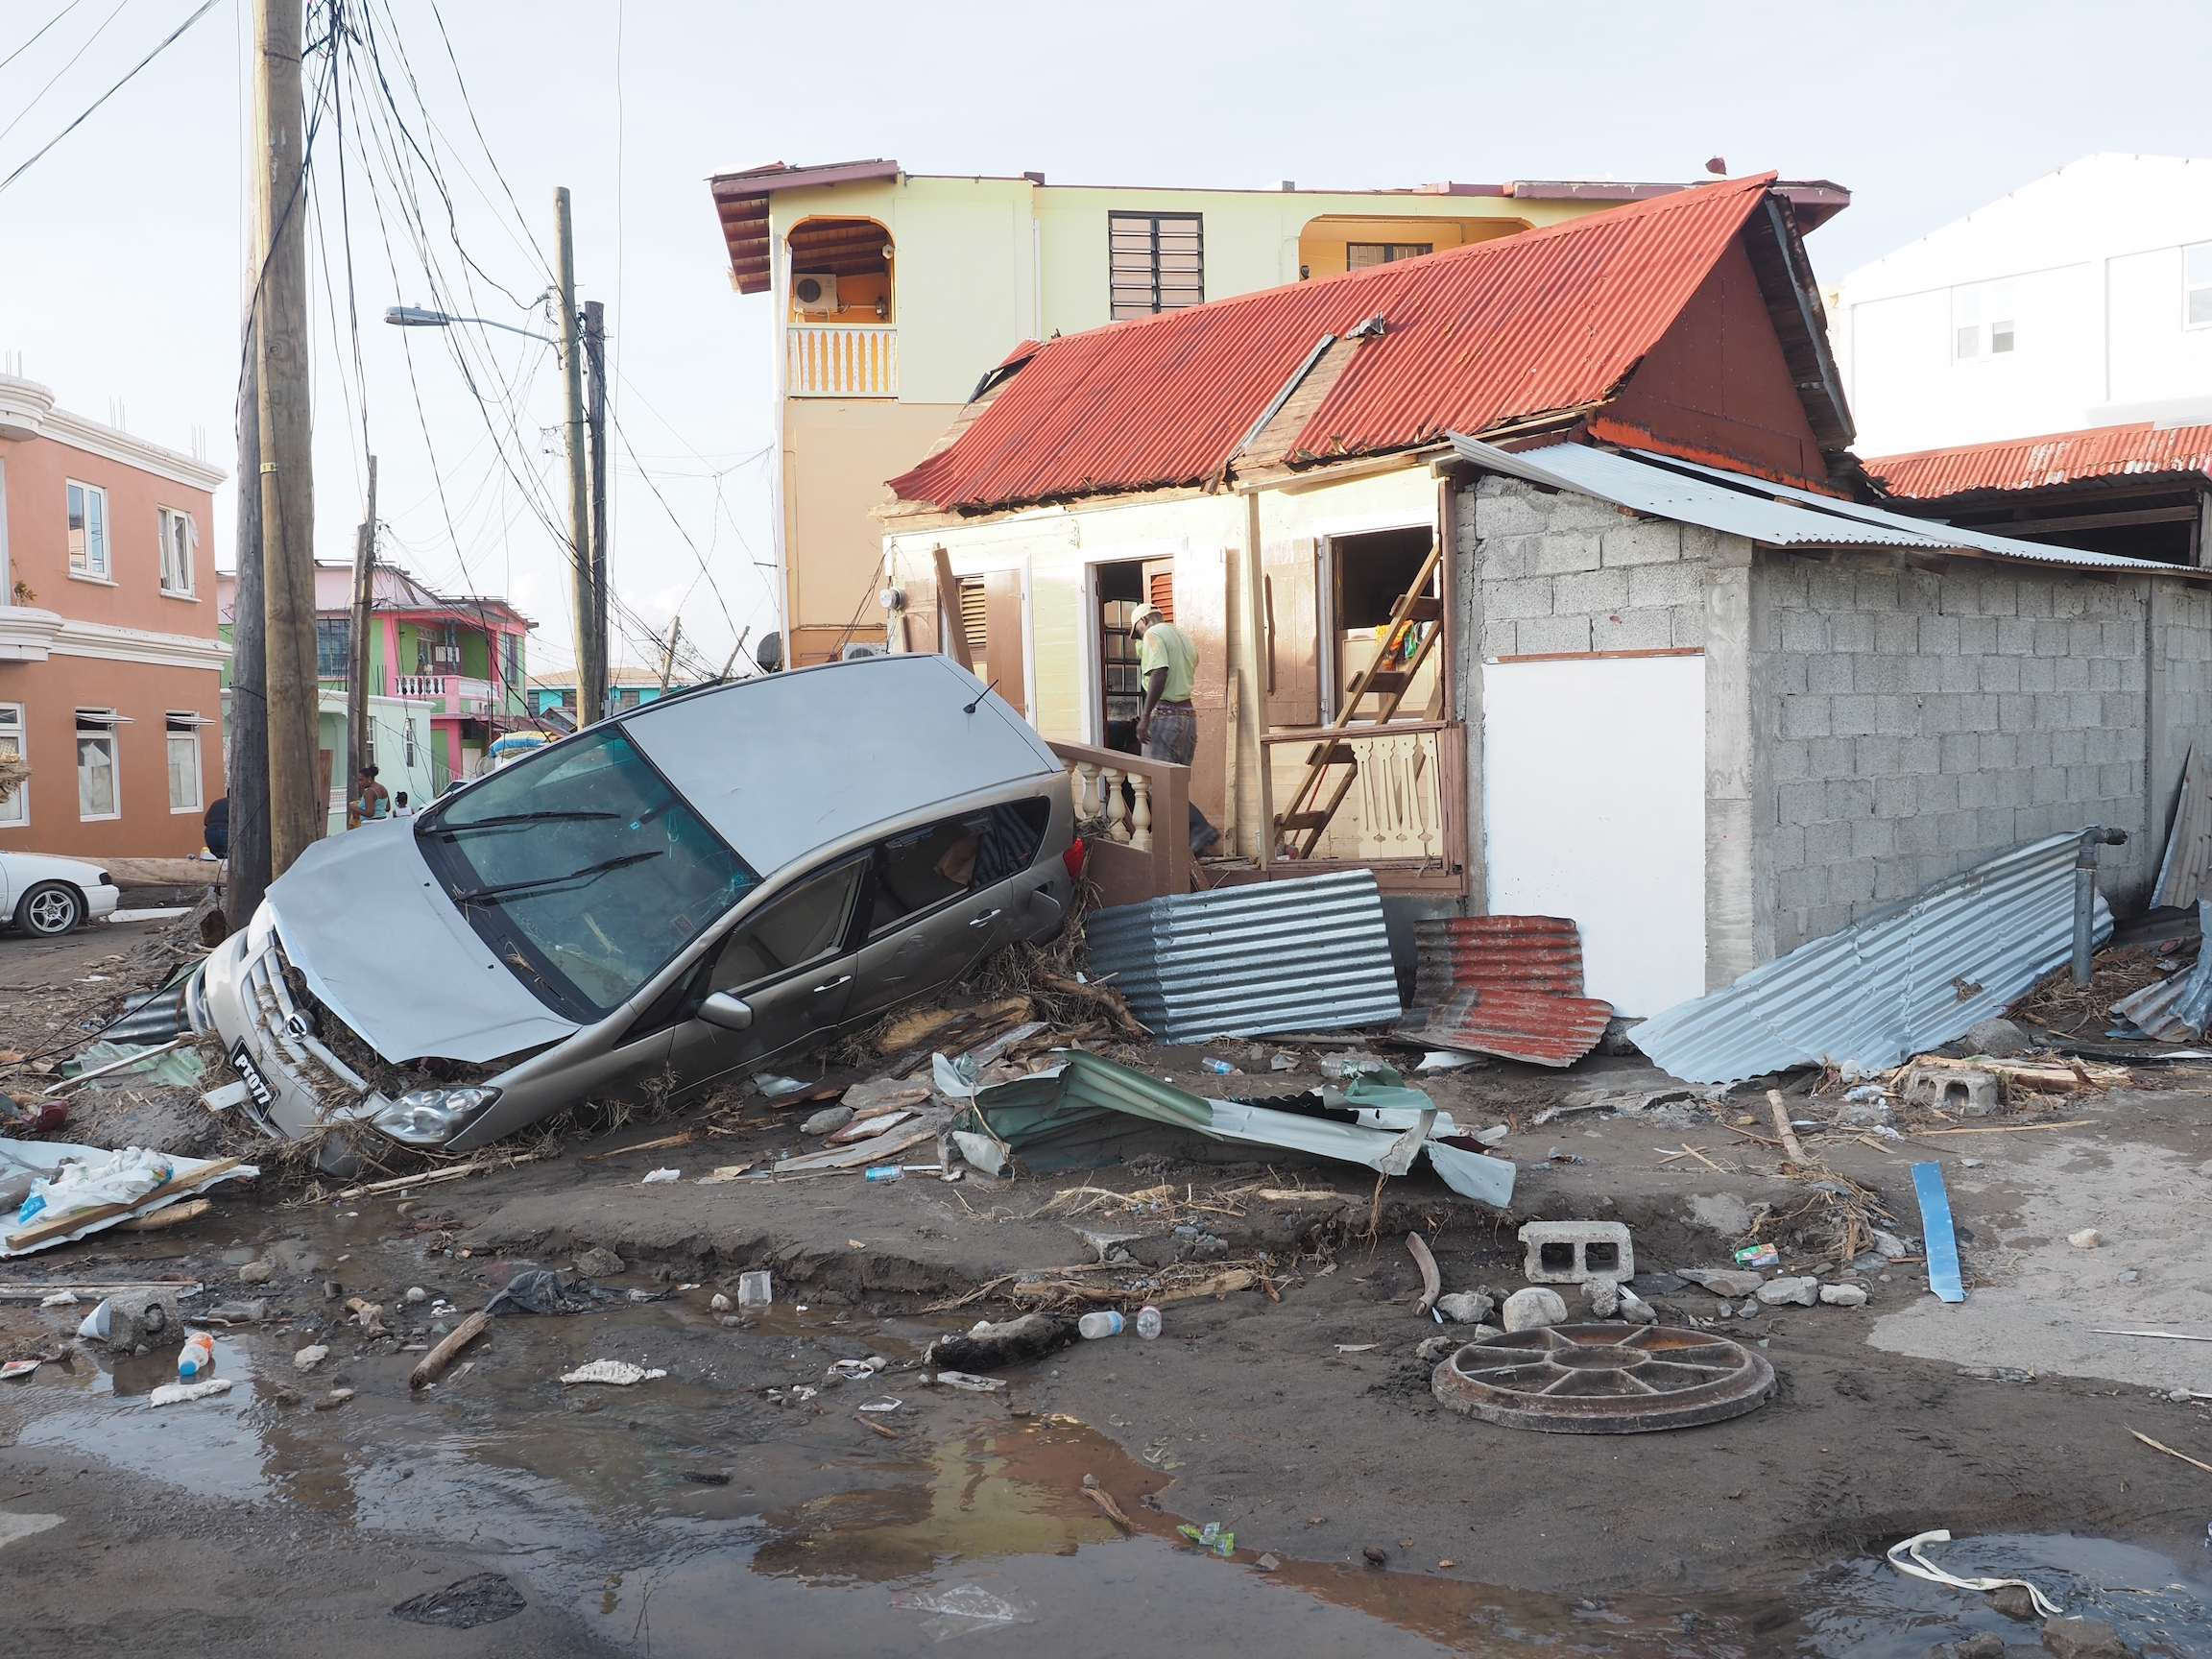 A new study has estimated that around 4,645 people died during the three-month period following Hurricane Maria, and nearly one-third of households surveyed said that reported deaths were caused by a delay in access to medical care.